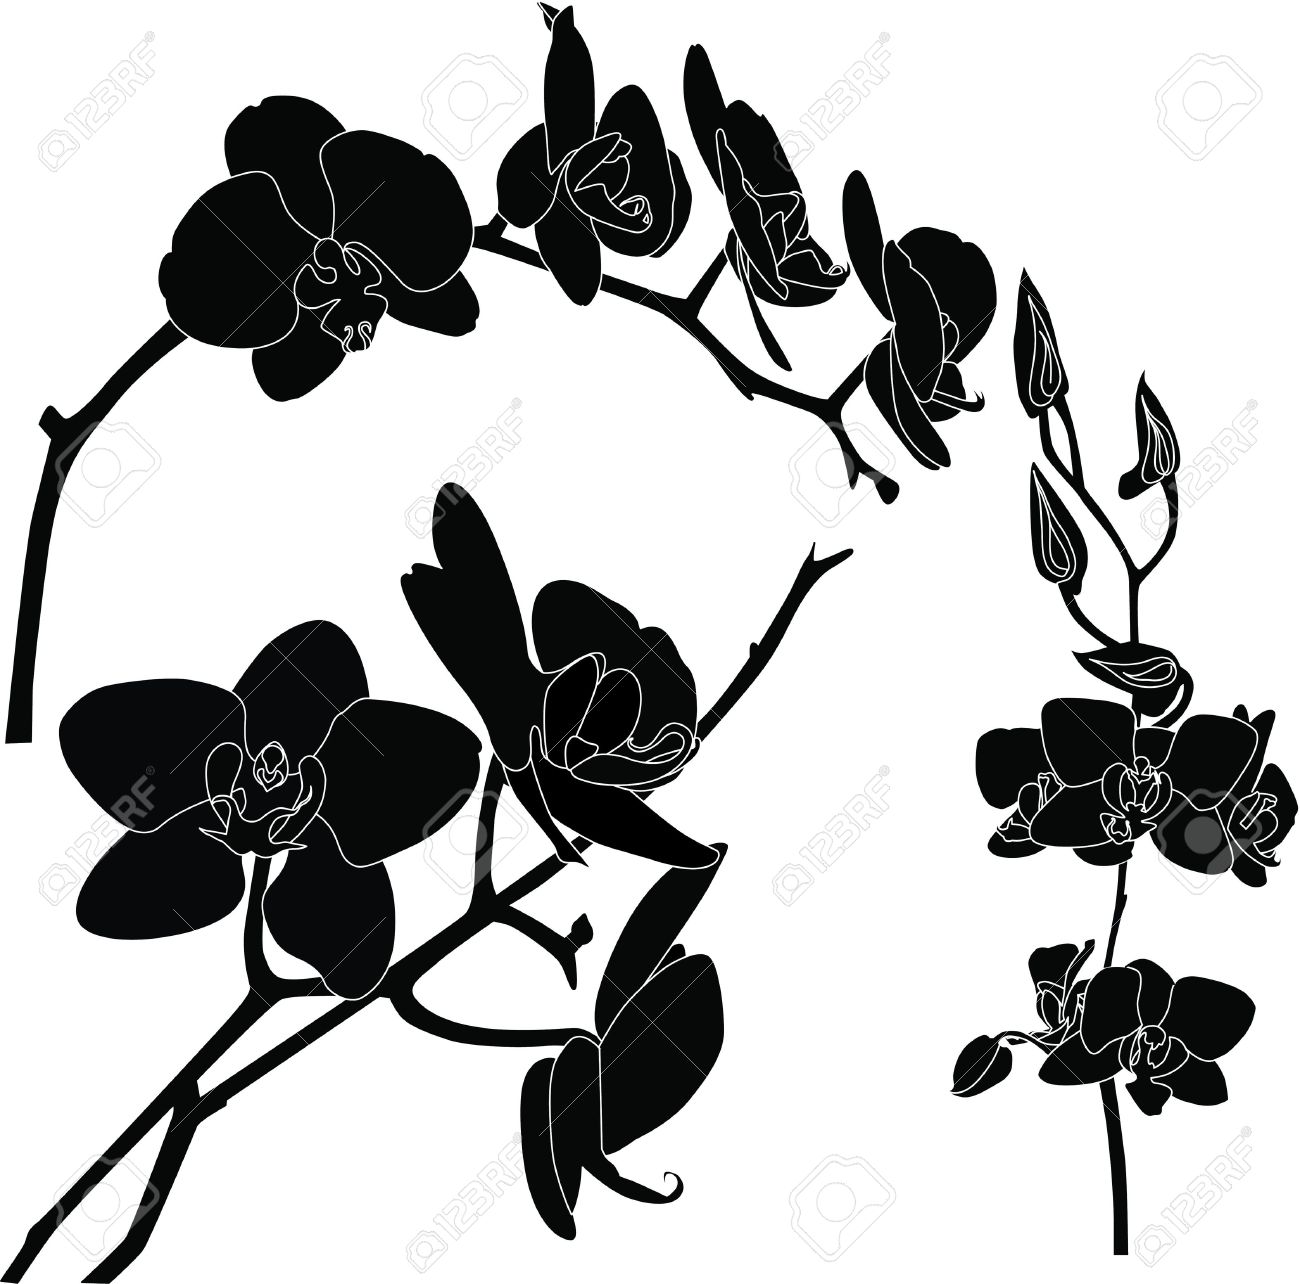 gousicteco: Orchid Clipart Black And White Images.